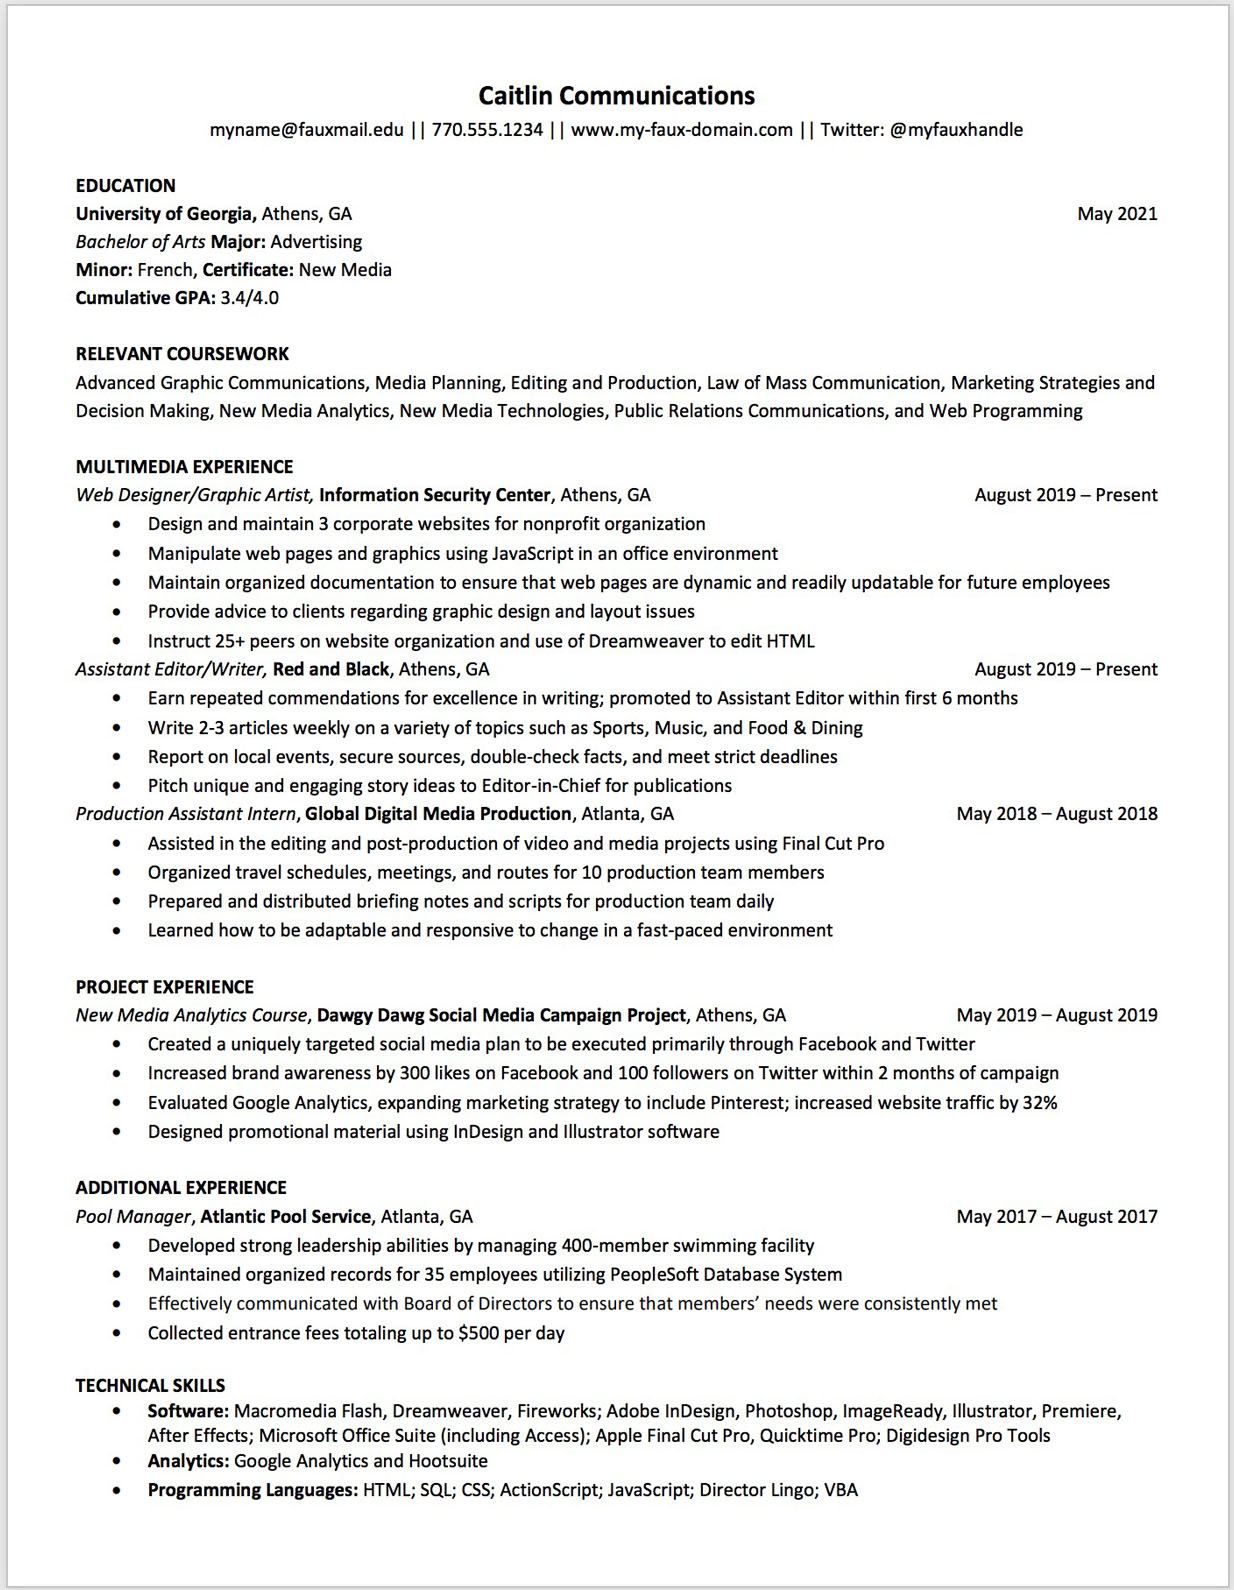 Communications resume template